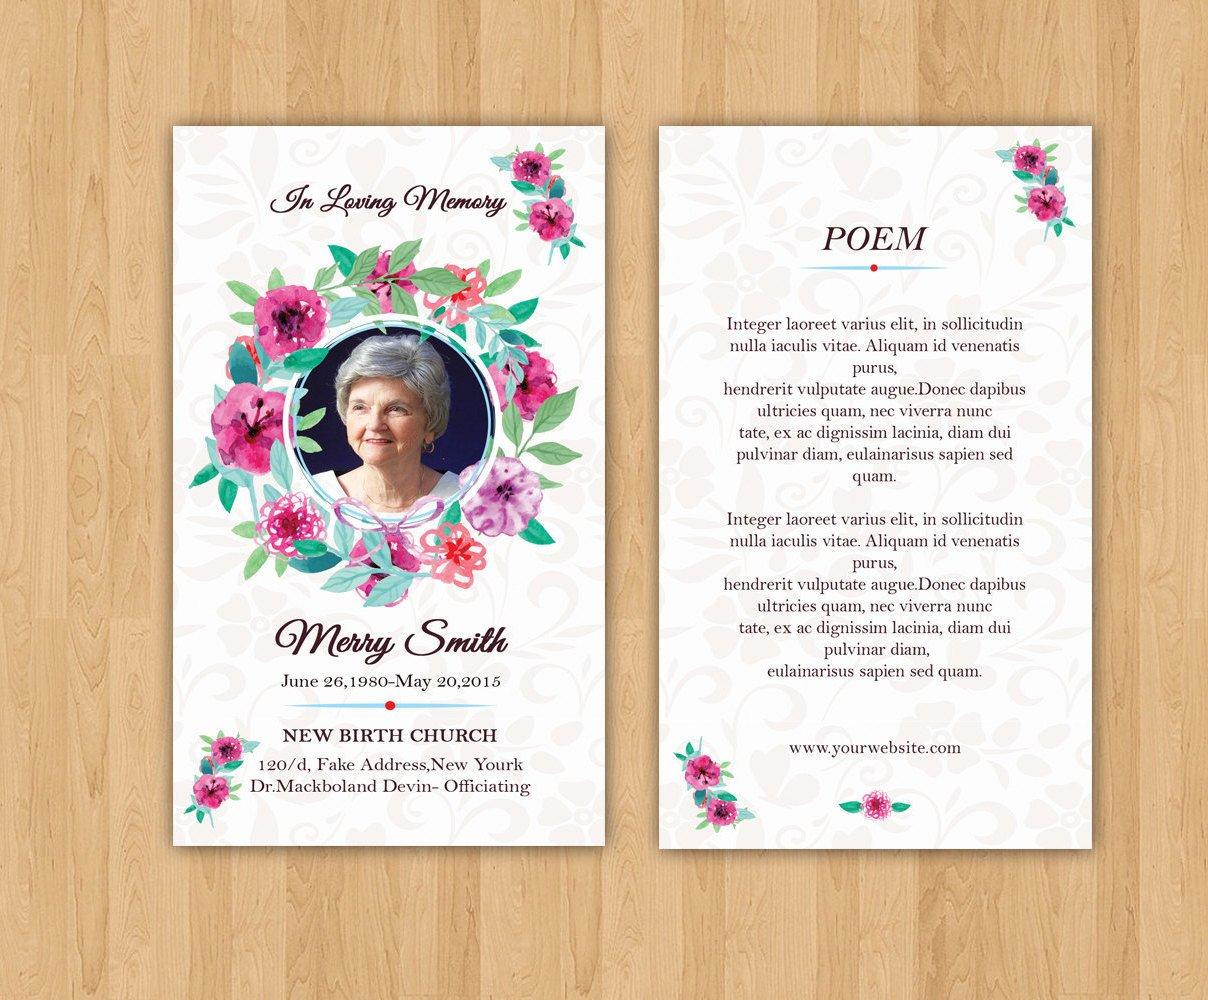 Funeral Prayer Cards Templates Funeral Prayer Card Template Editable Ms Word & Shop